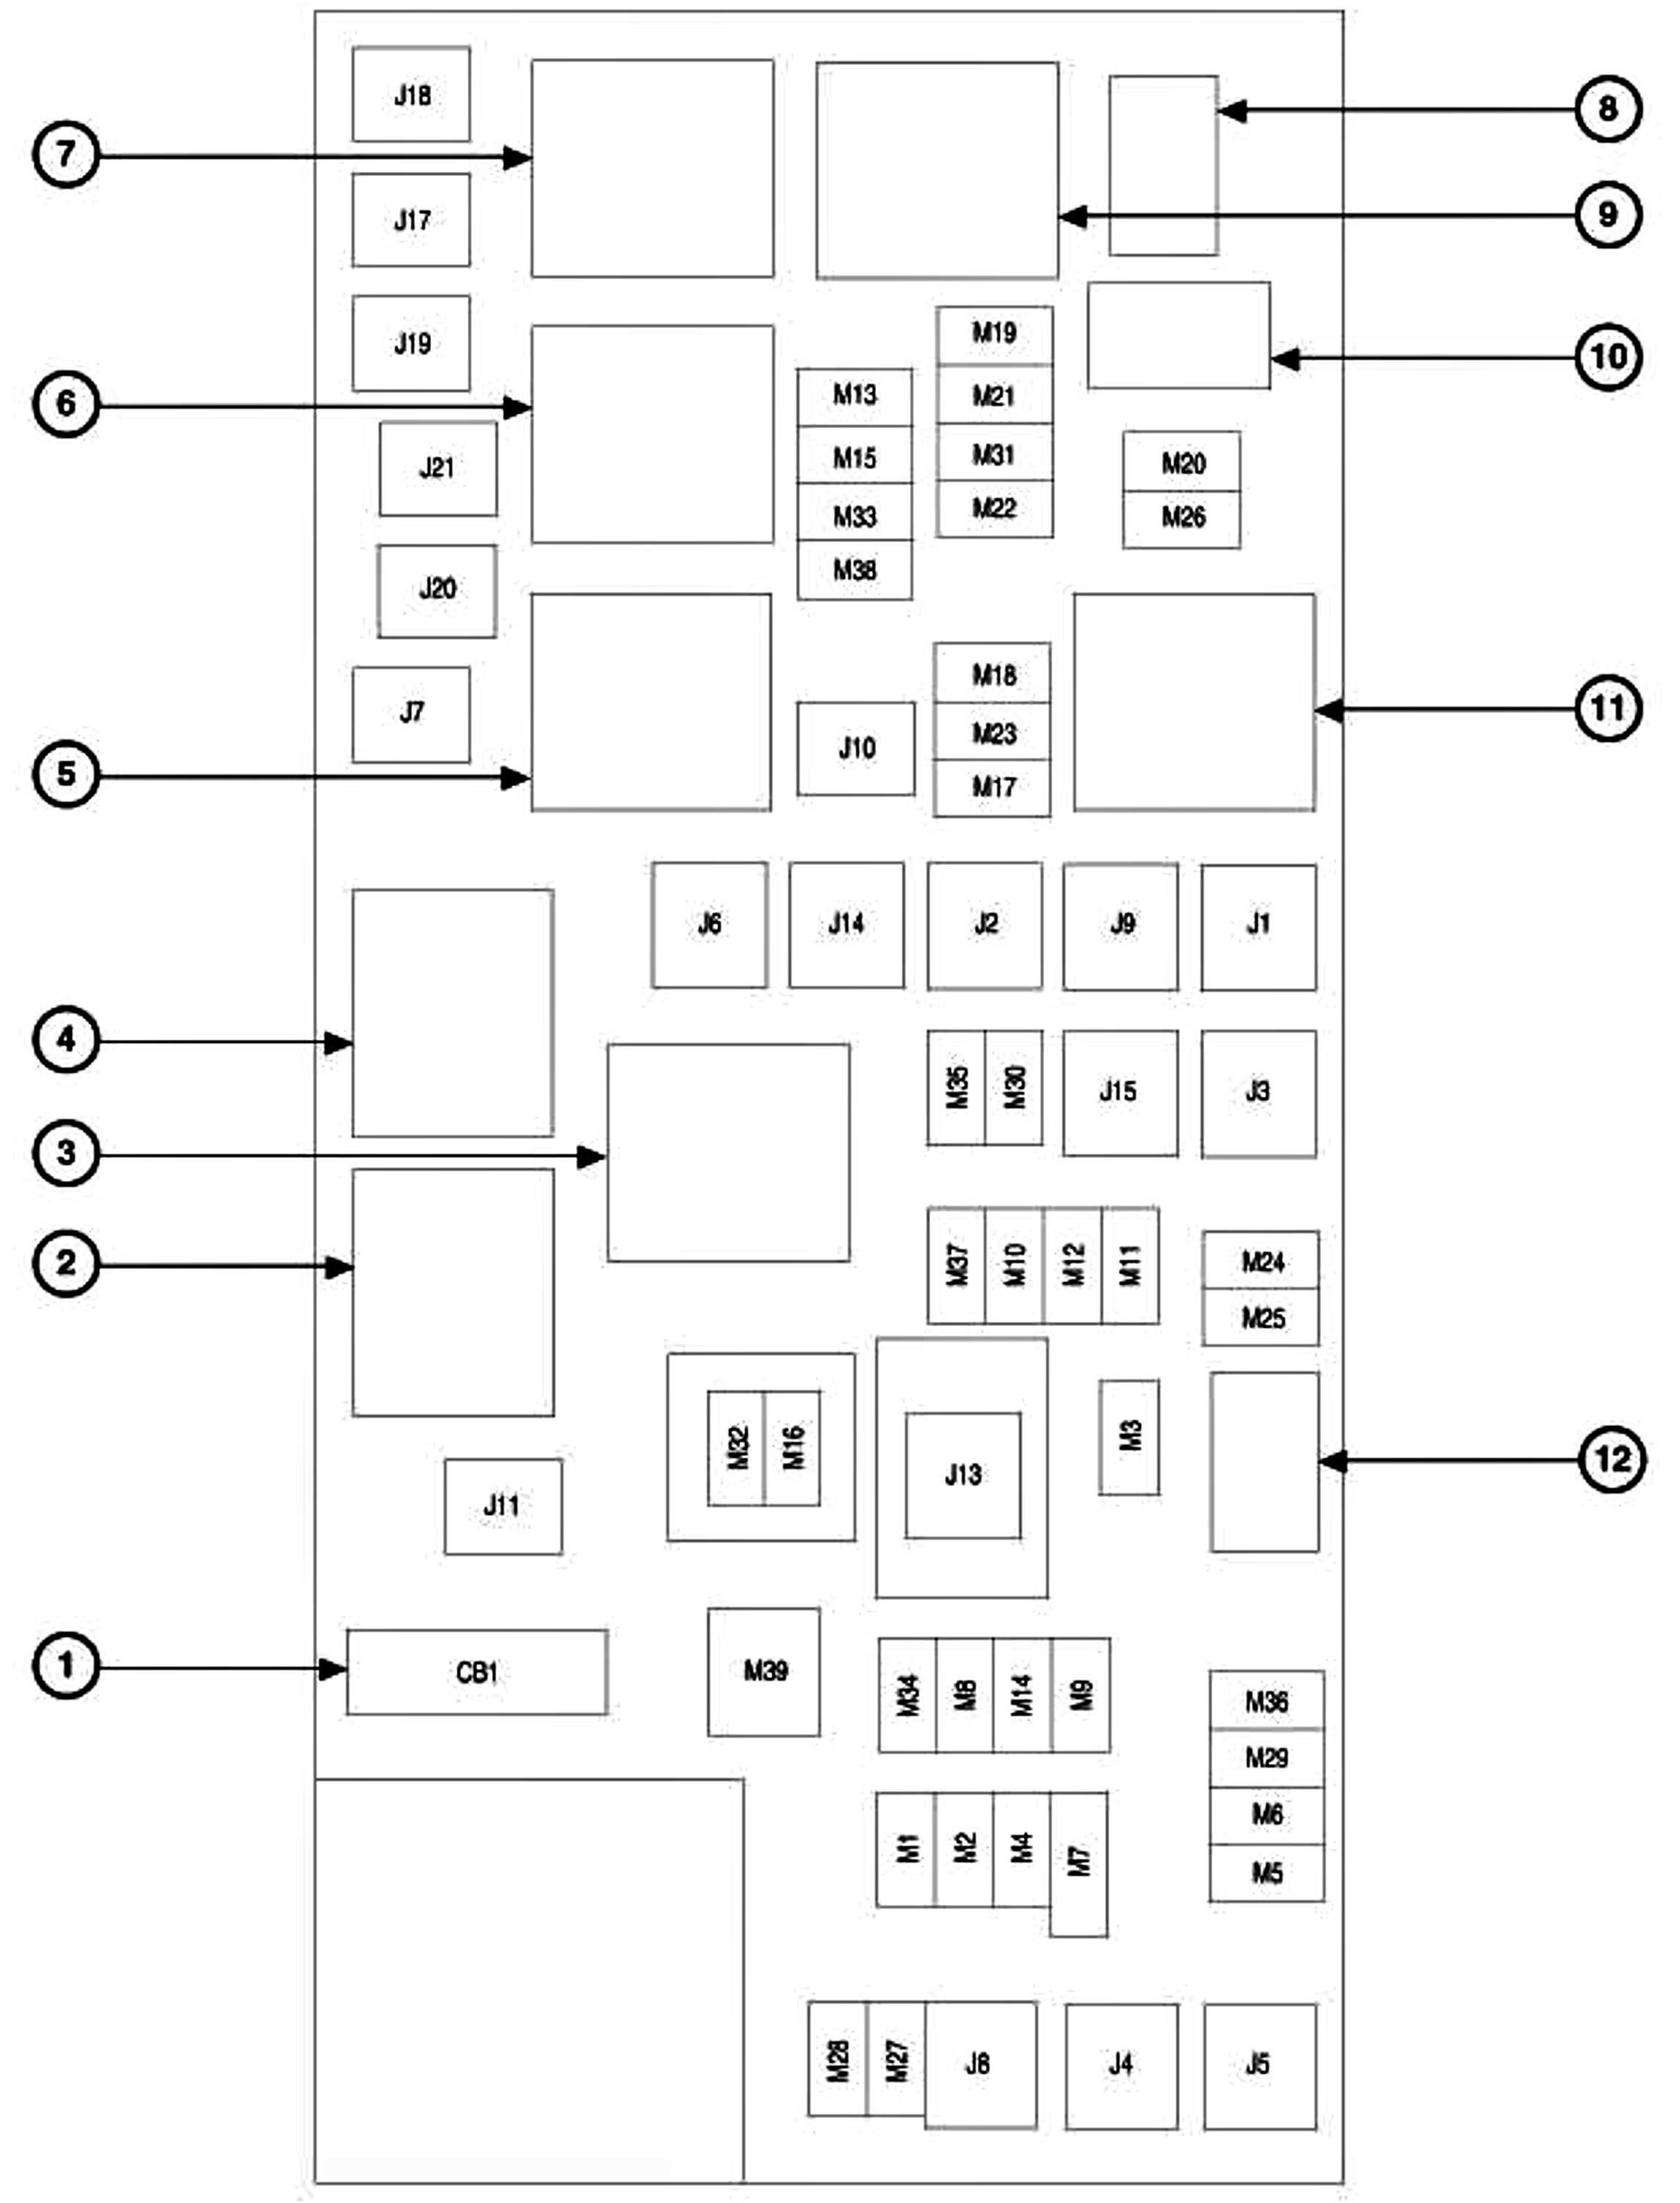 hight resolution of 2008 jeep commander fuse box schema diagram database jeep commander fuse box diagram jeep commander fuse box location